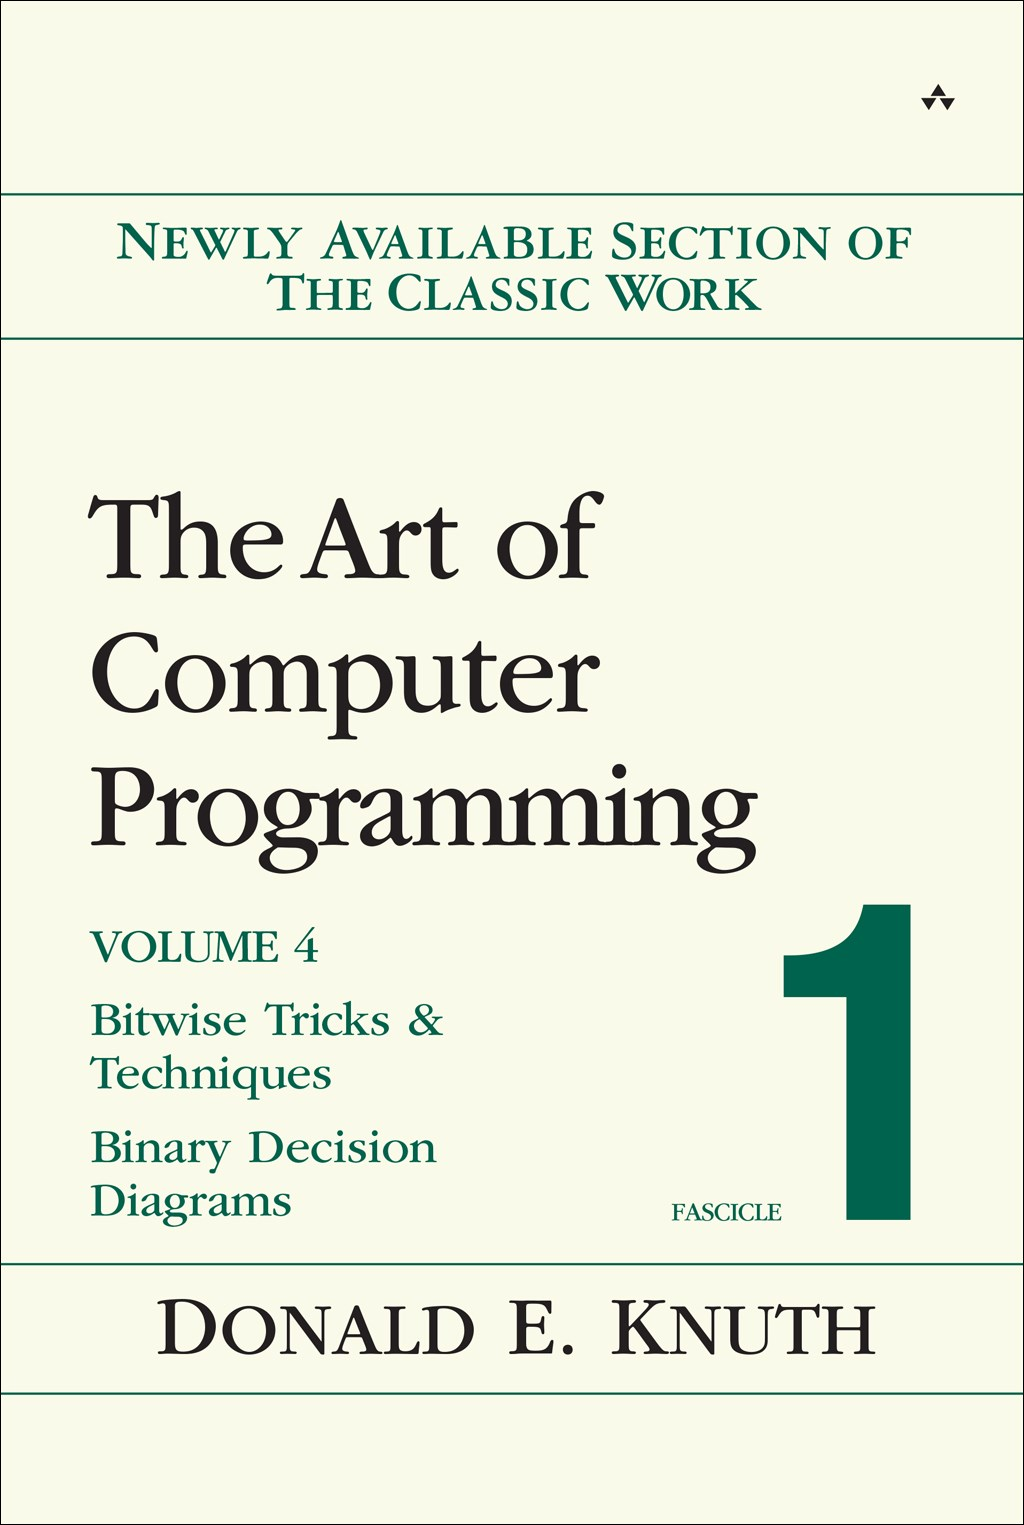 Art of Computer Programming, Volume 4, Fascicle 1, The: Bitwise Tricks & Techniques; Binary Decision Diagrams